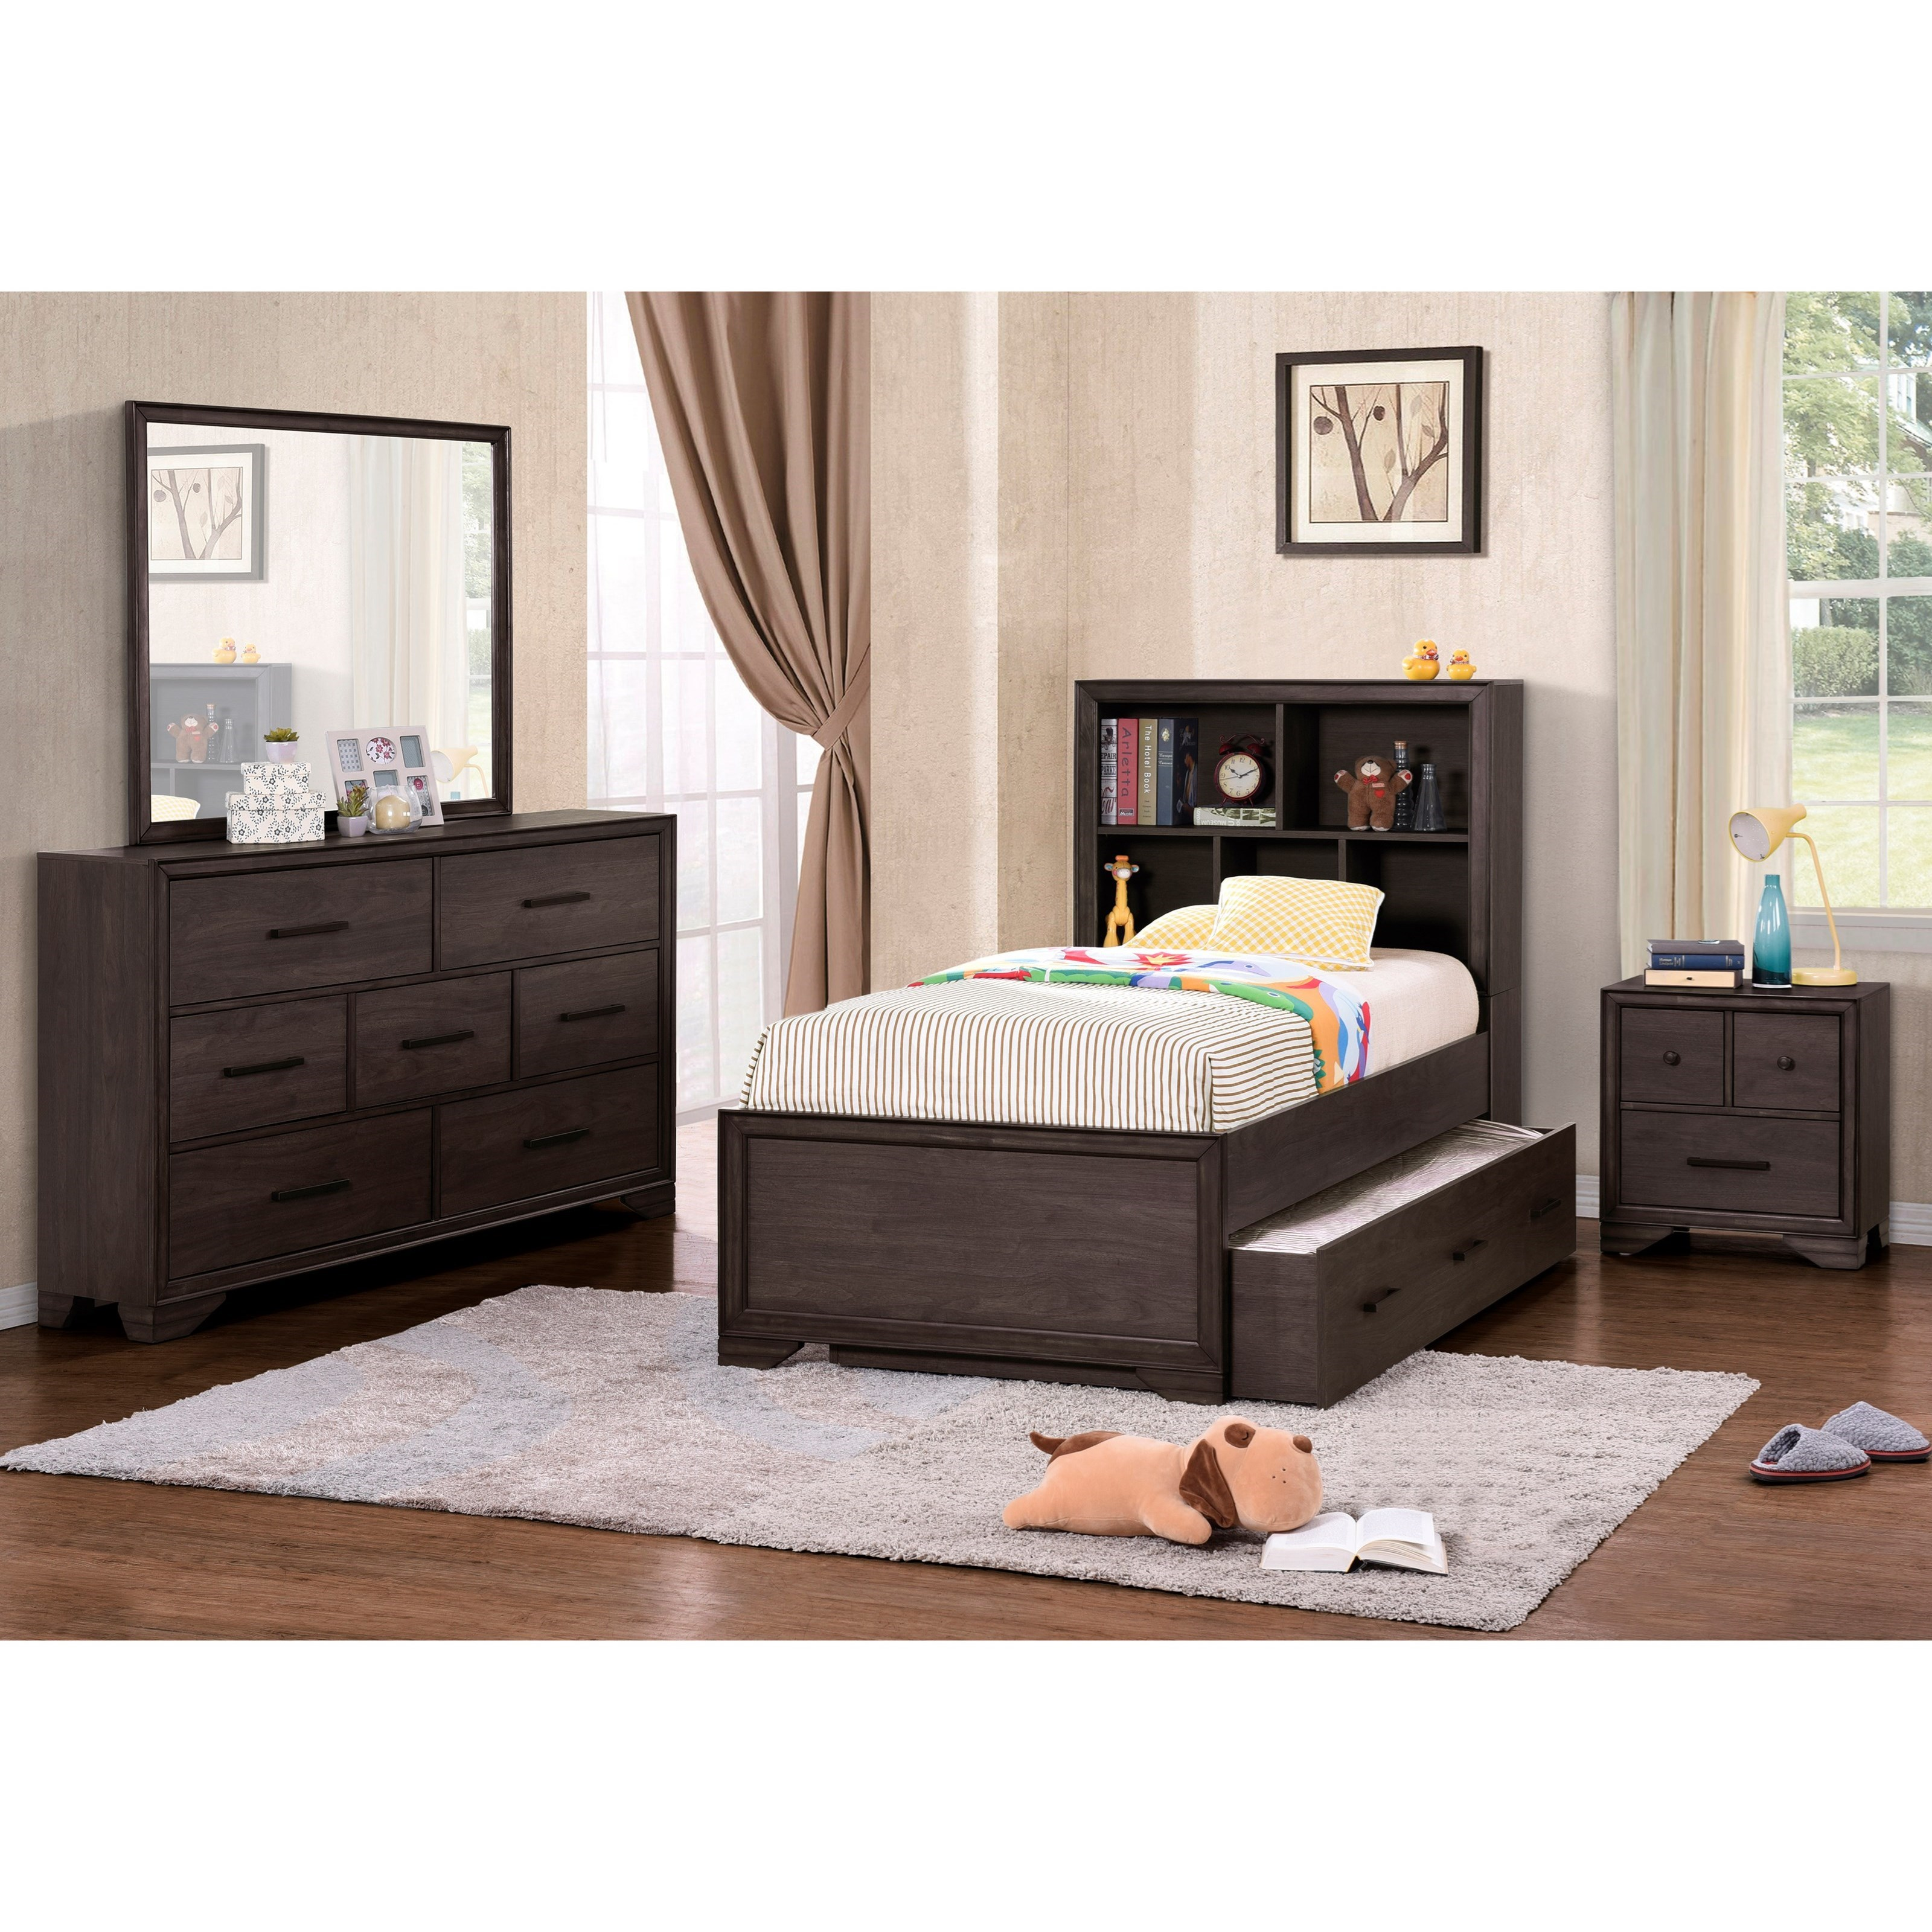 Samuel Lawrence Granite Falls Twin Bedroom Group  Dream